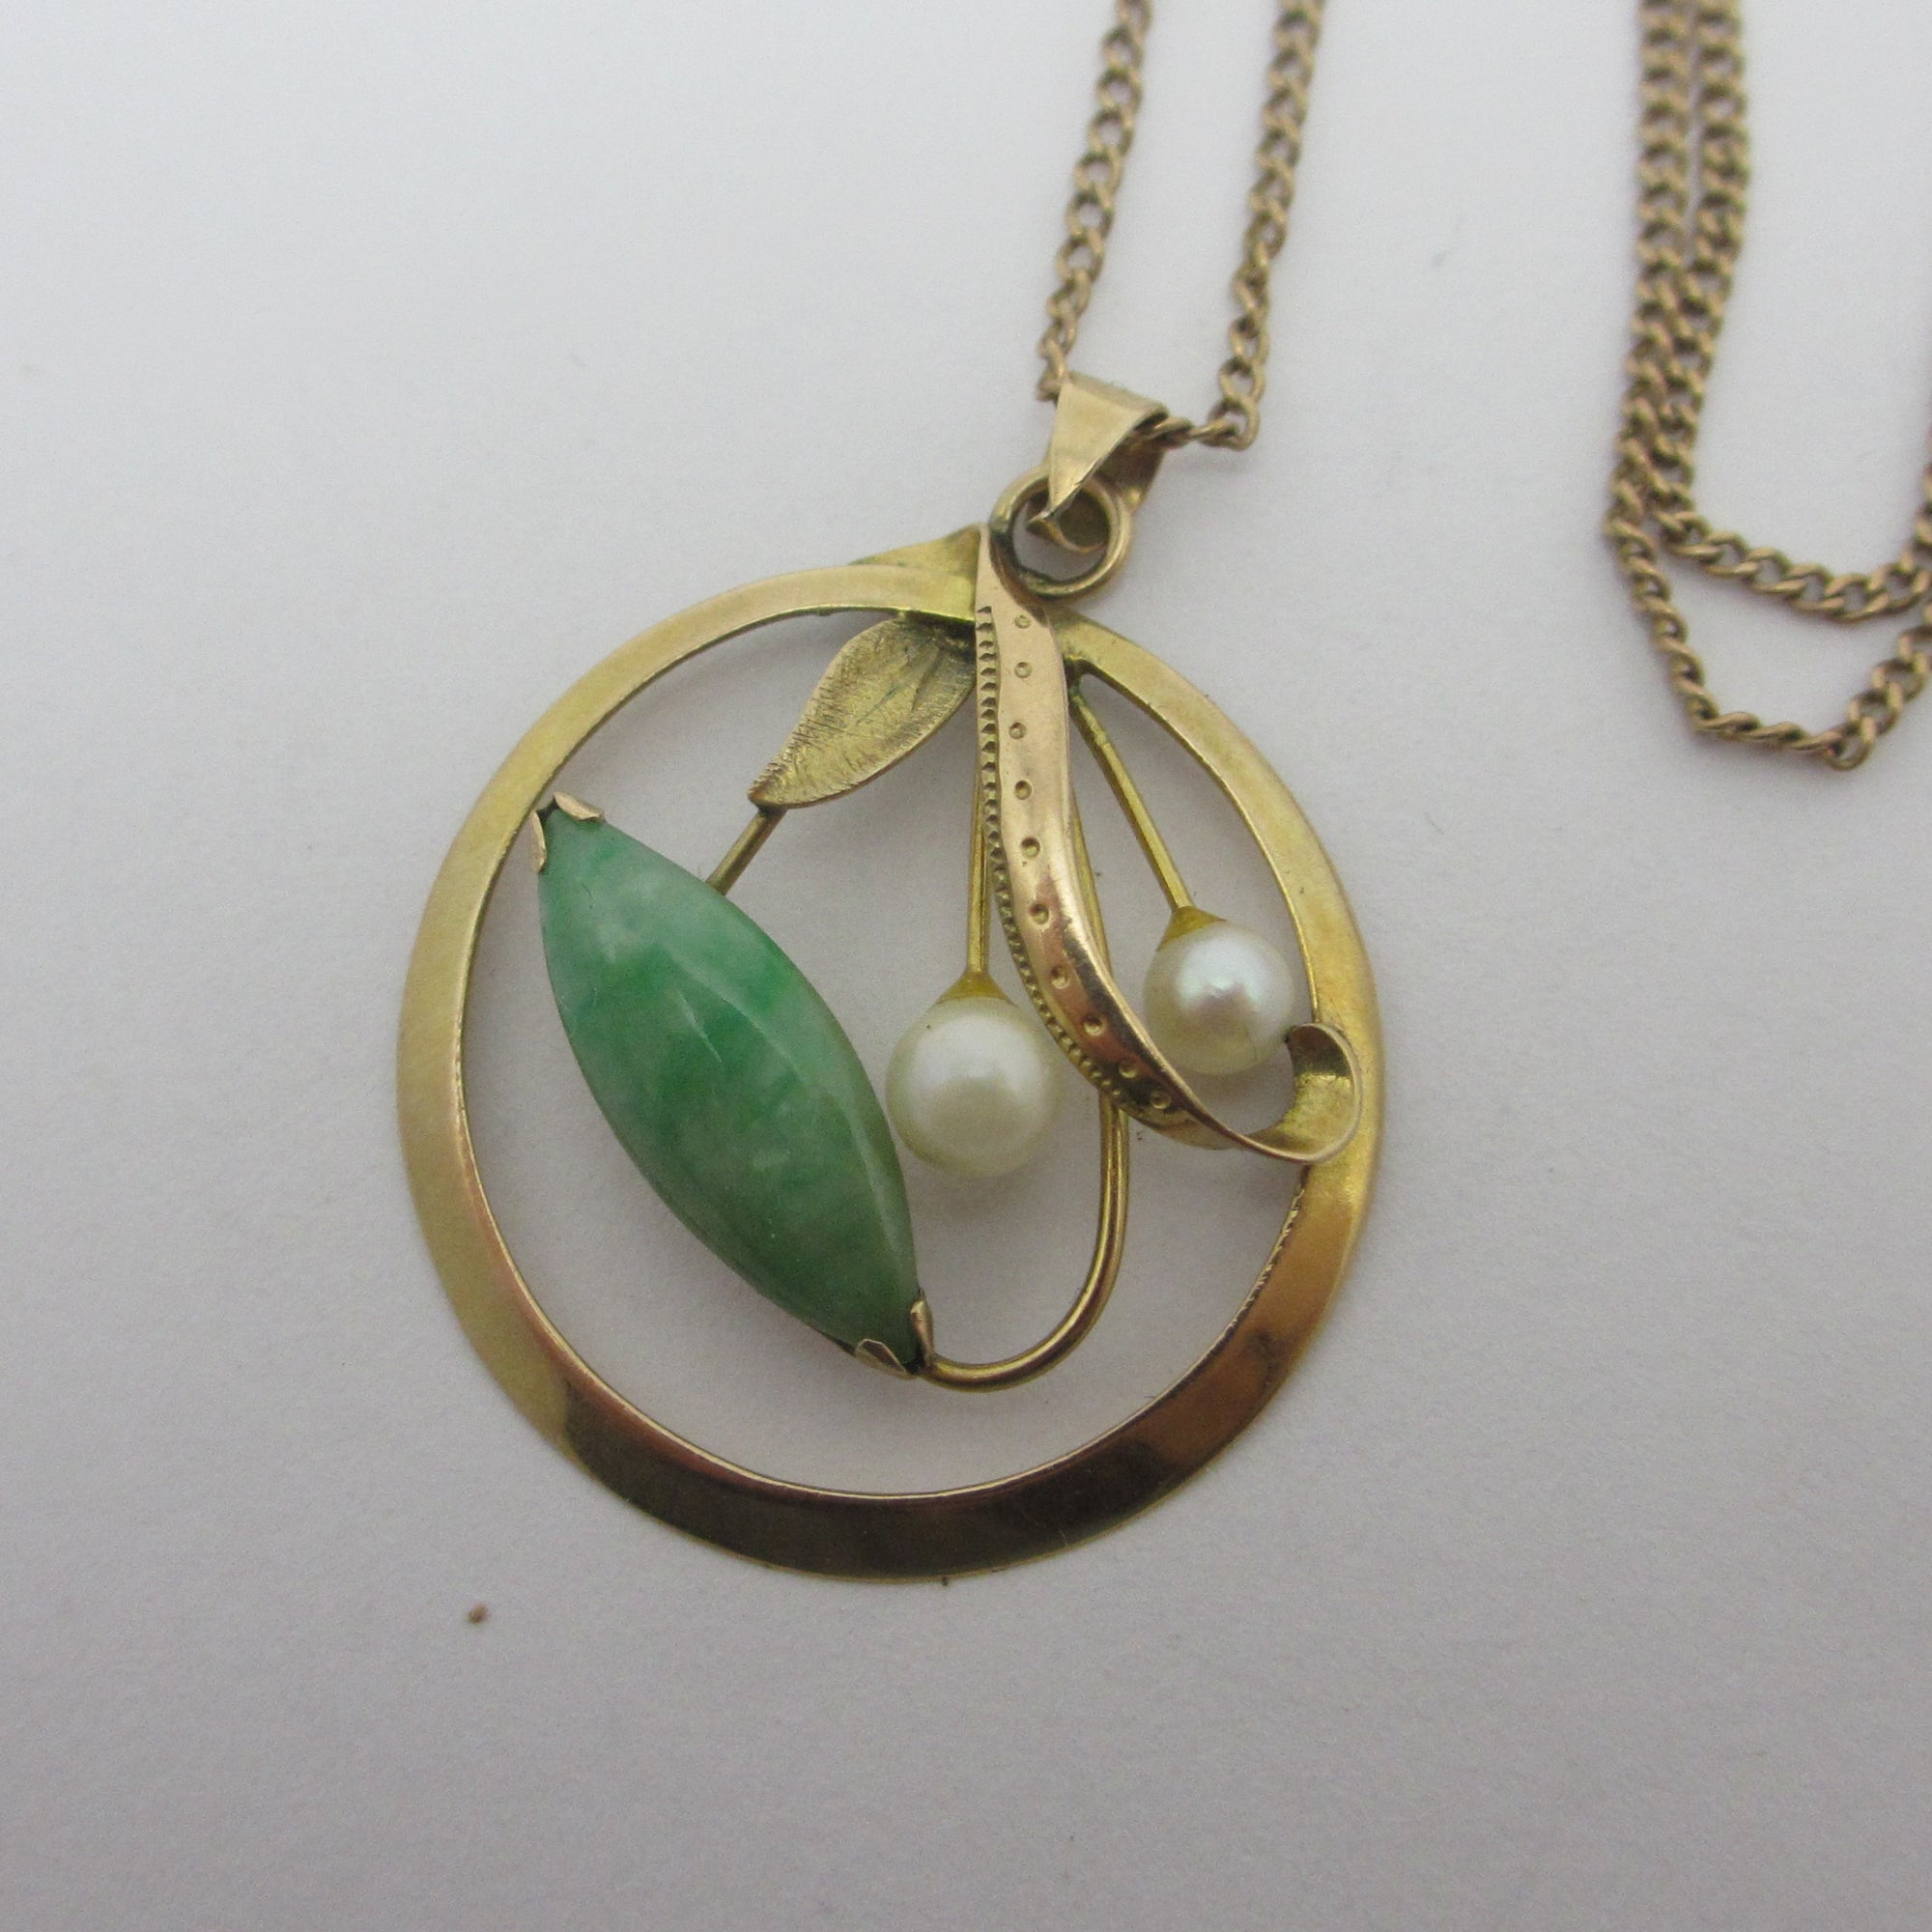 Jadeite & Pearl 14k Gold Pendant Necklace Vintage Art Deco c1920